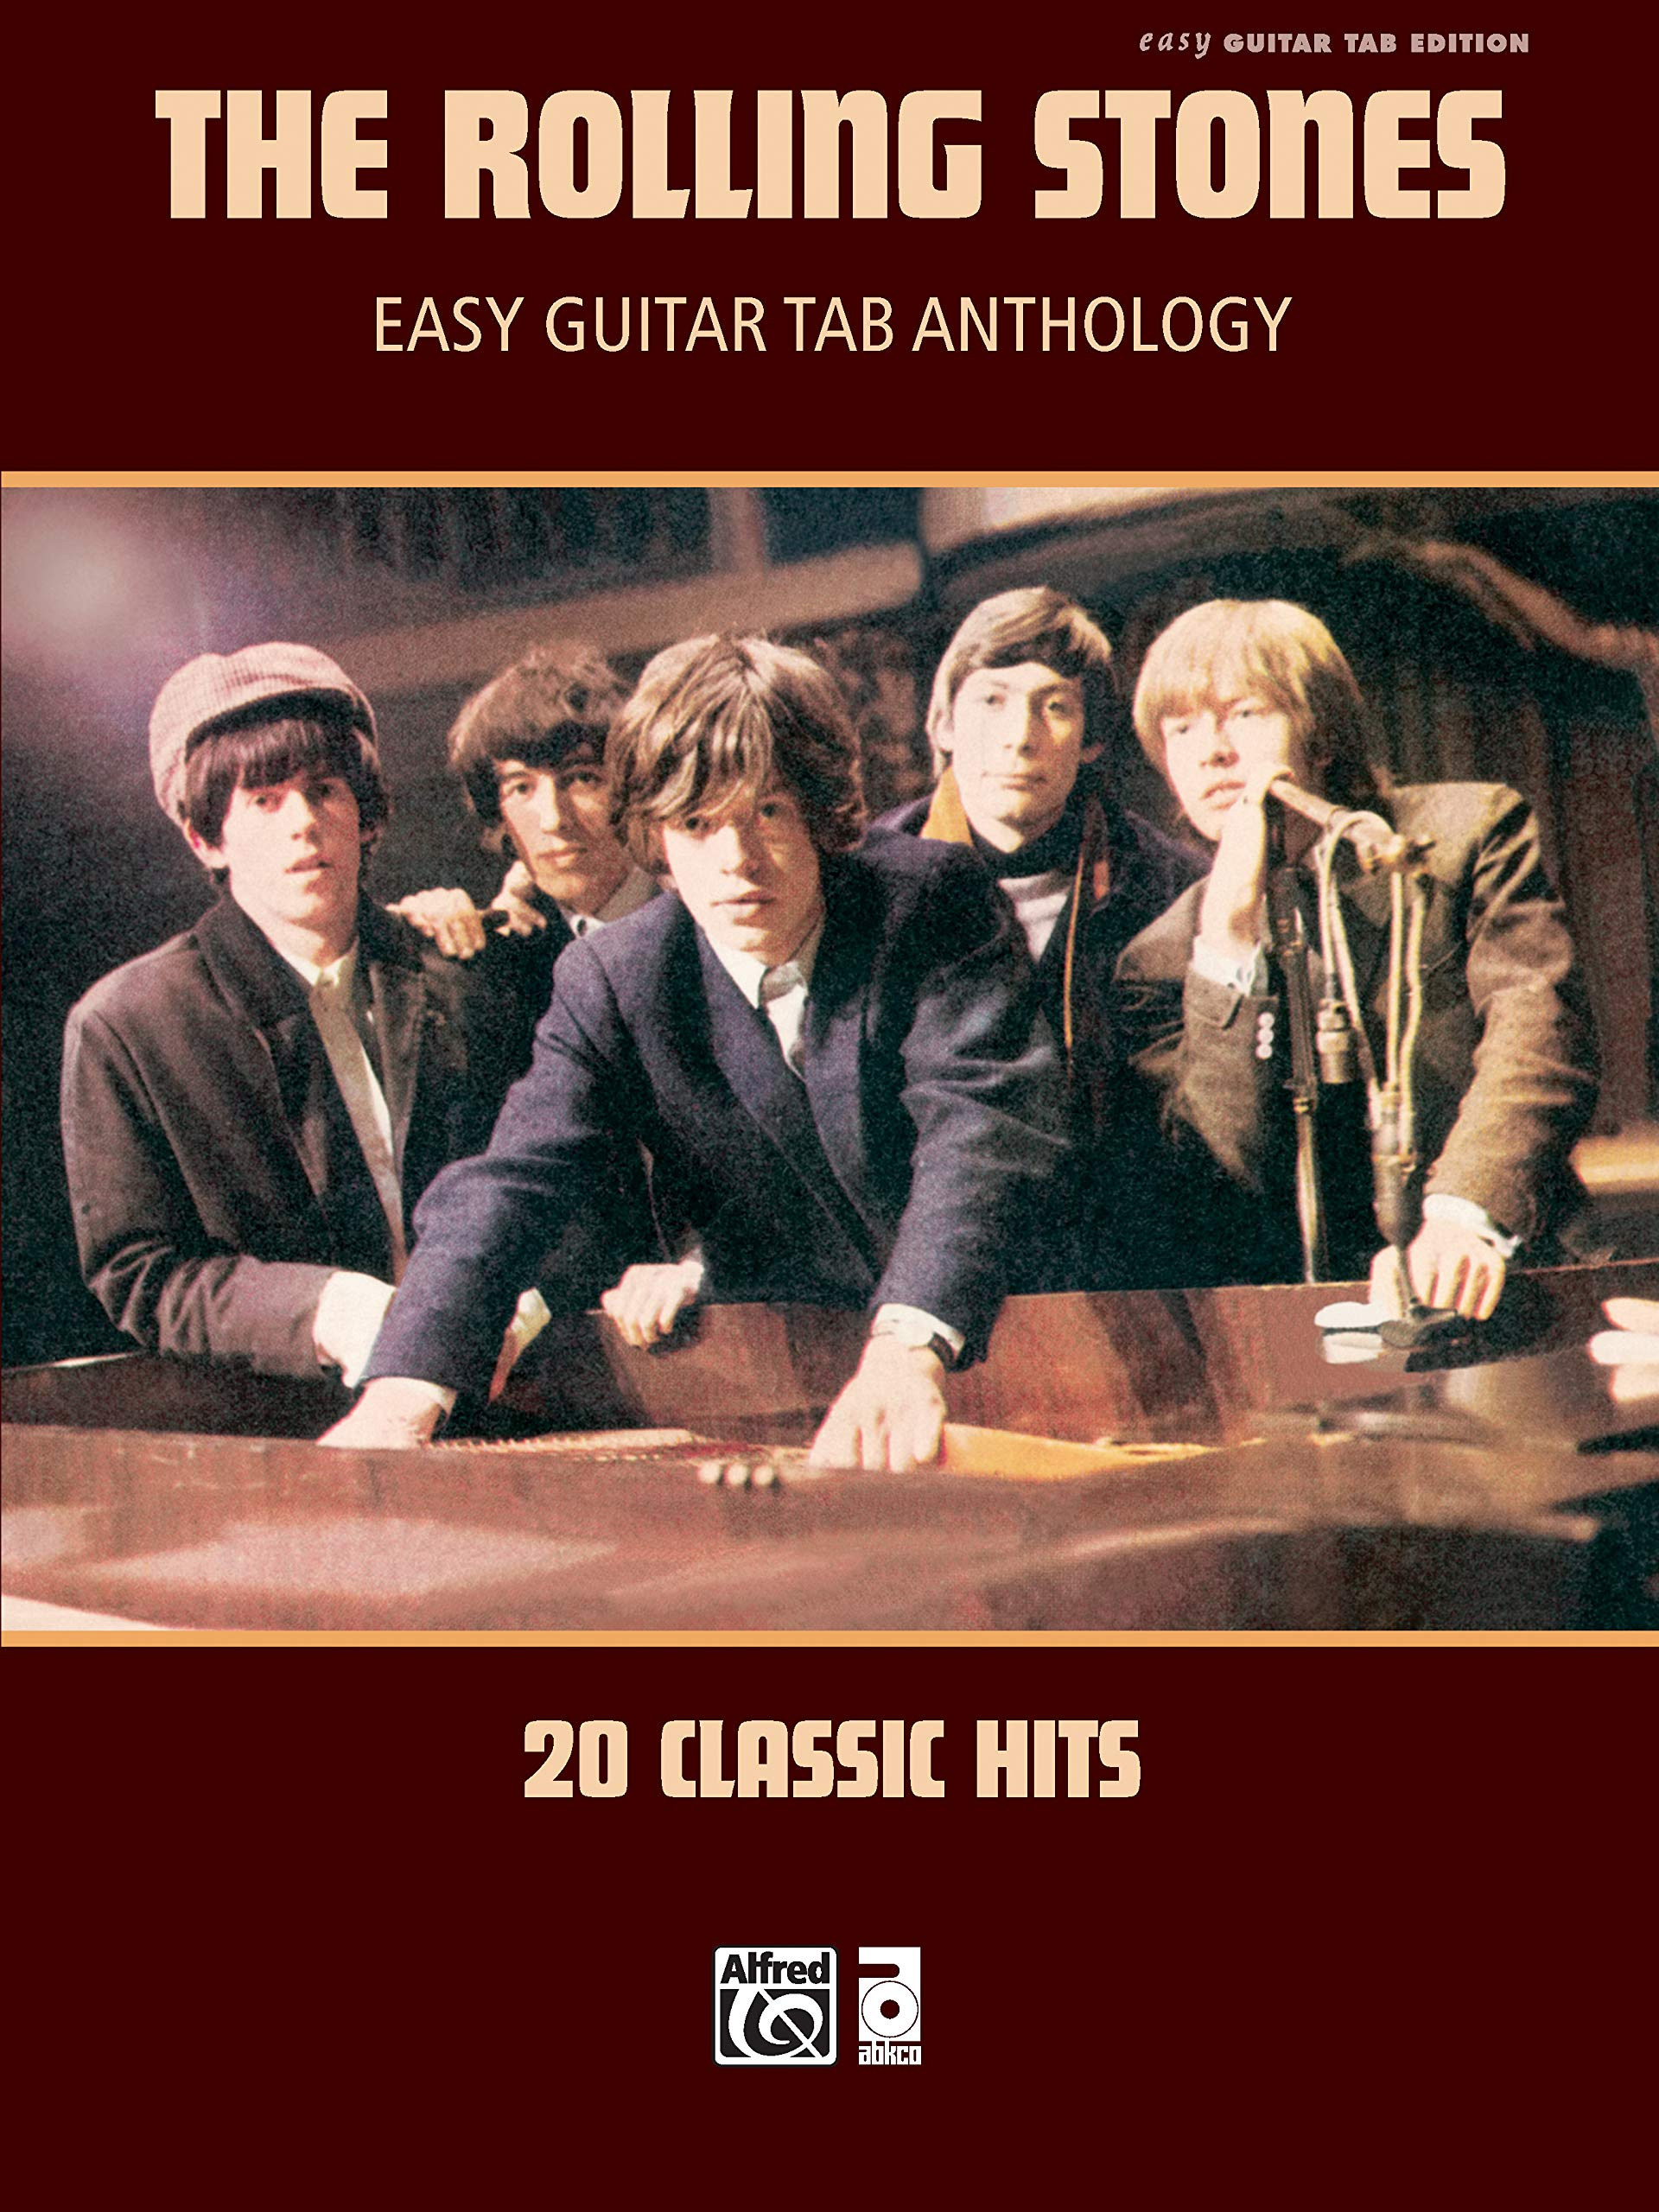 The Rolling Stones -- Easy Guitar Tab Anthology: 20 Classic Hits ...